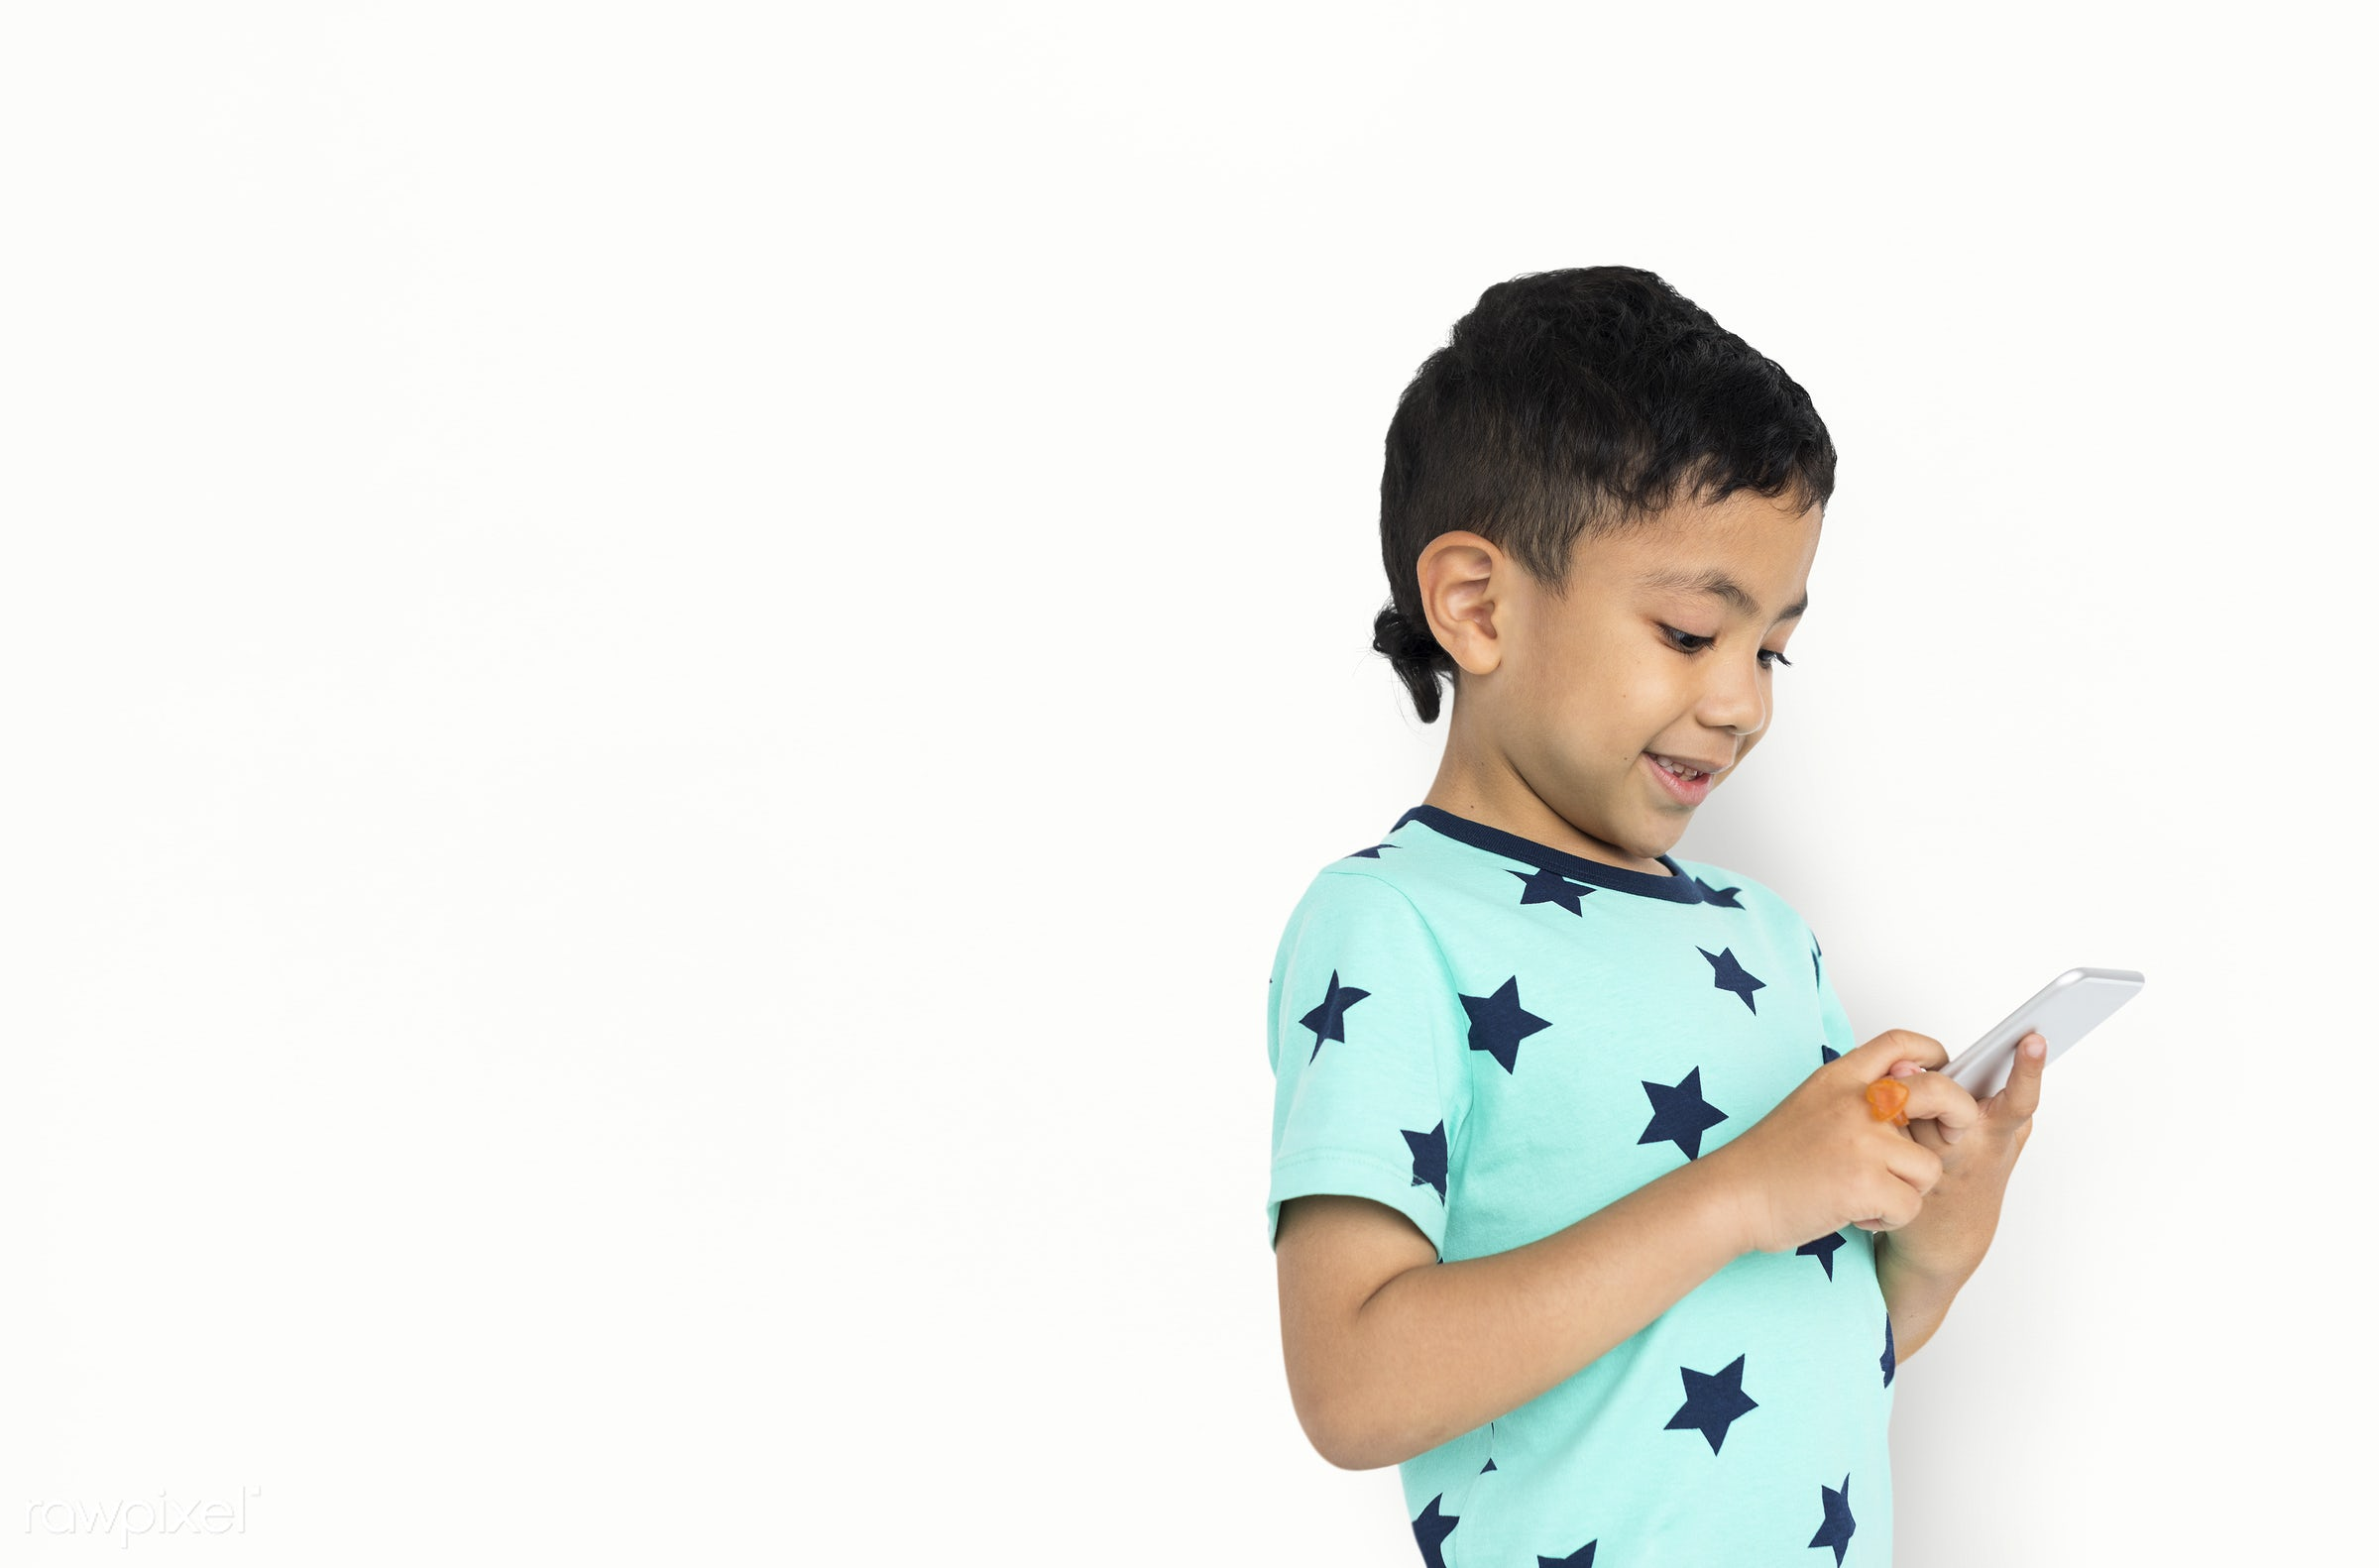 expression, studio, person, phone, isolated on white, joy, little, cute, people, kid, child, joyous, happy, mobile phone,...